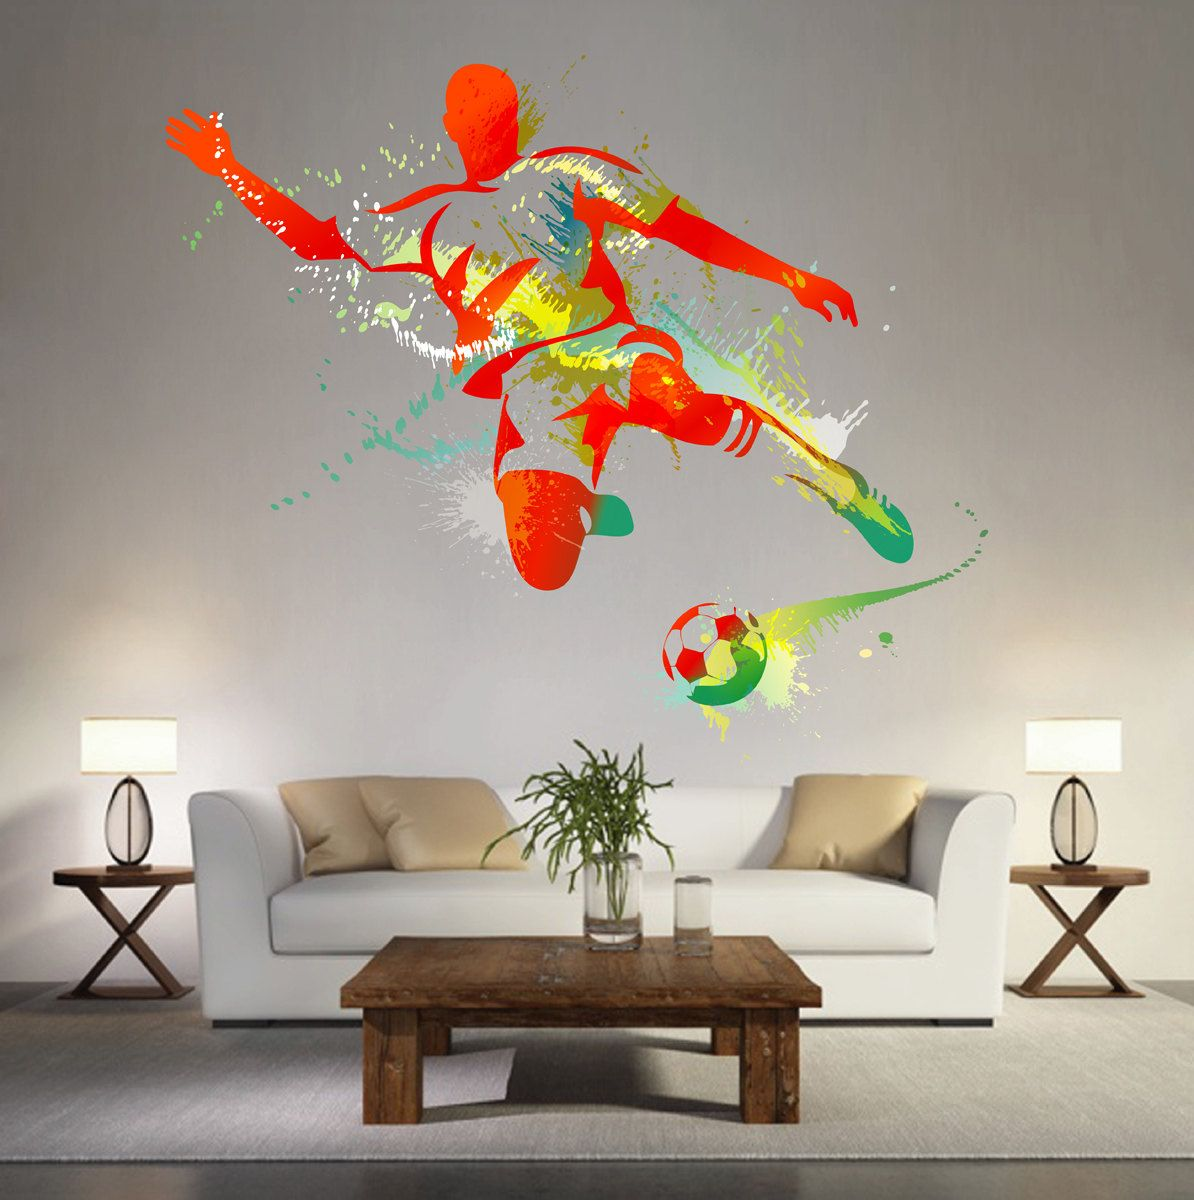 Spray Paint Decor Ideas Part - 18: Kcik119 Full Color Wall Decal Soccer Football Ball Sport Spray Paint Room  Bedroom Sports Hall